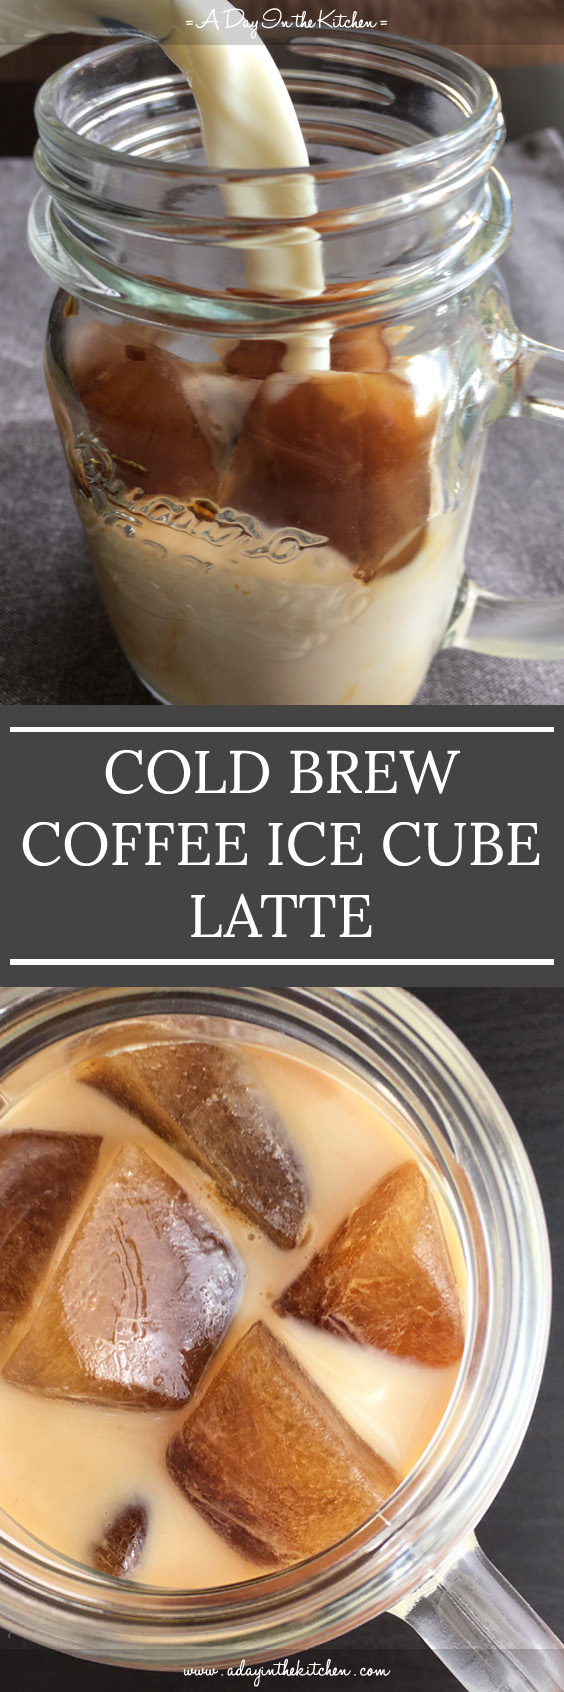 Want iced coffee that doesn't get watered down as it nears the bottom of the glass? Cold-Brewed Coffee Ice Cube Latte will become your favorite iced coffee!